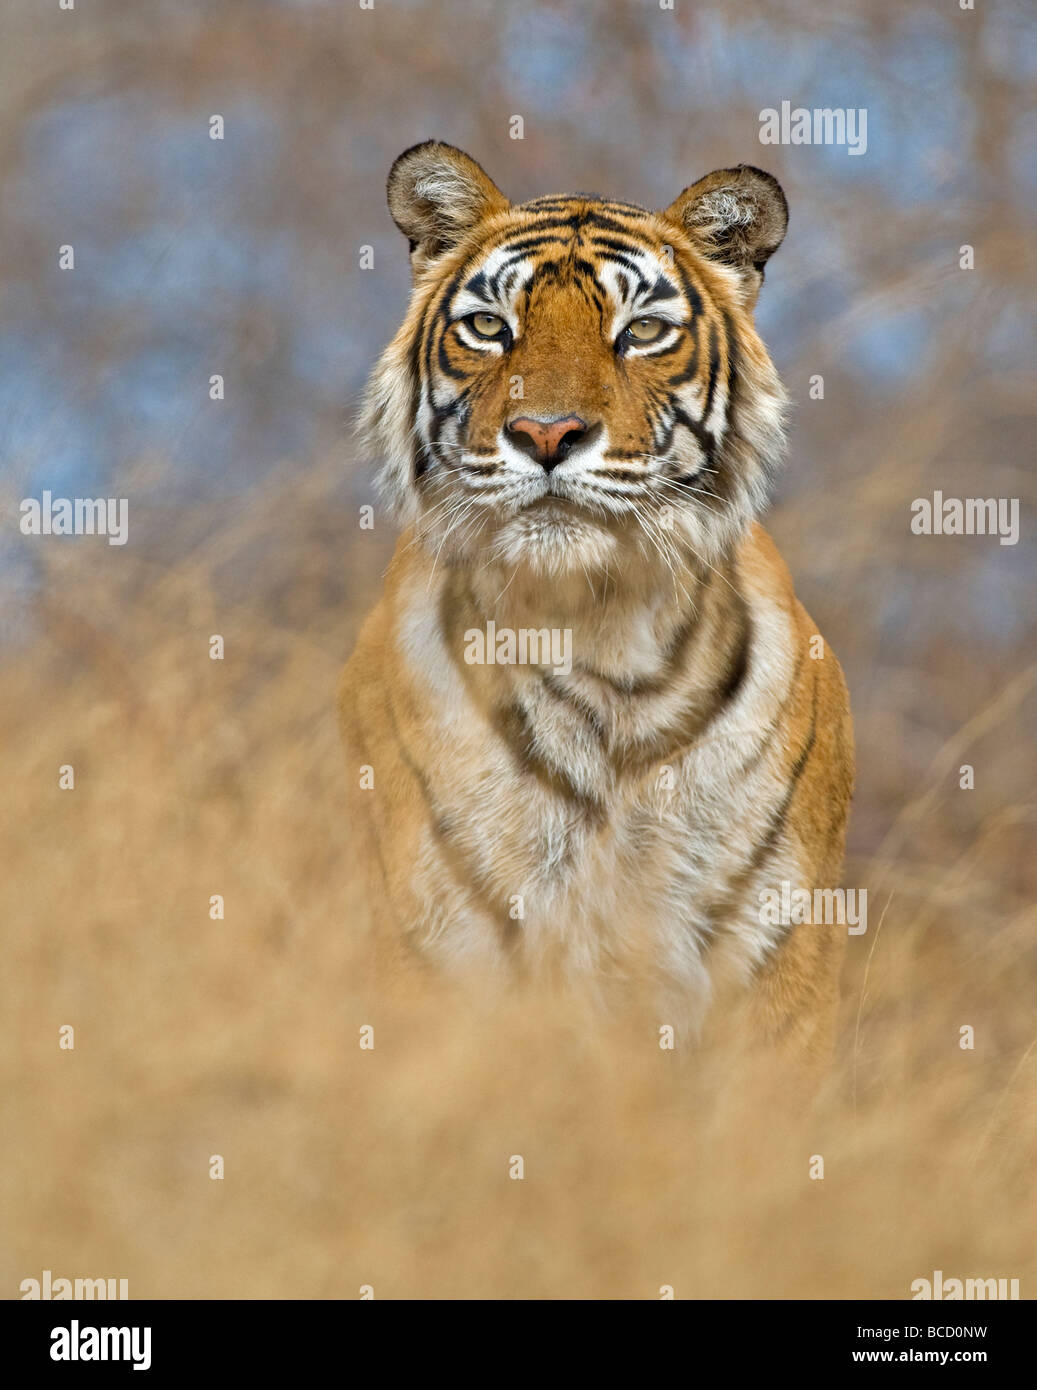 bengal tiger stockfotos bengal tiger bilder alamy. Black Bedroom Furniture Sets. Home Design Ideas